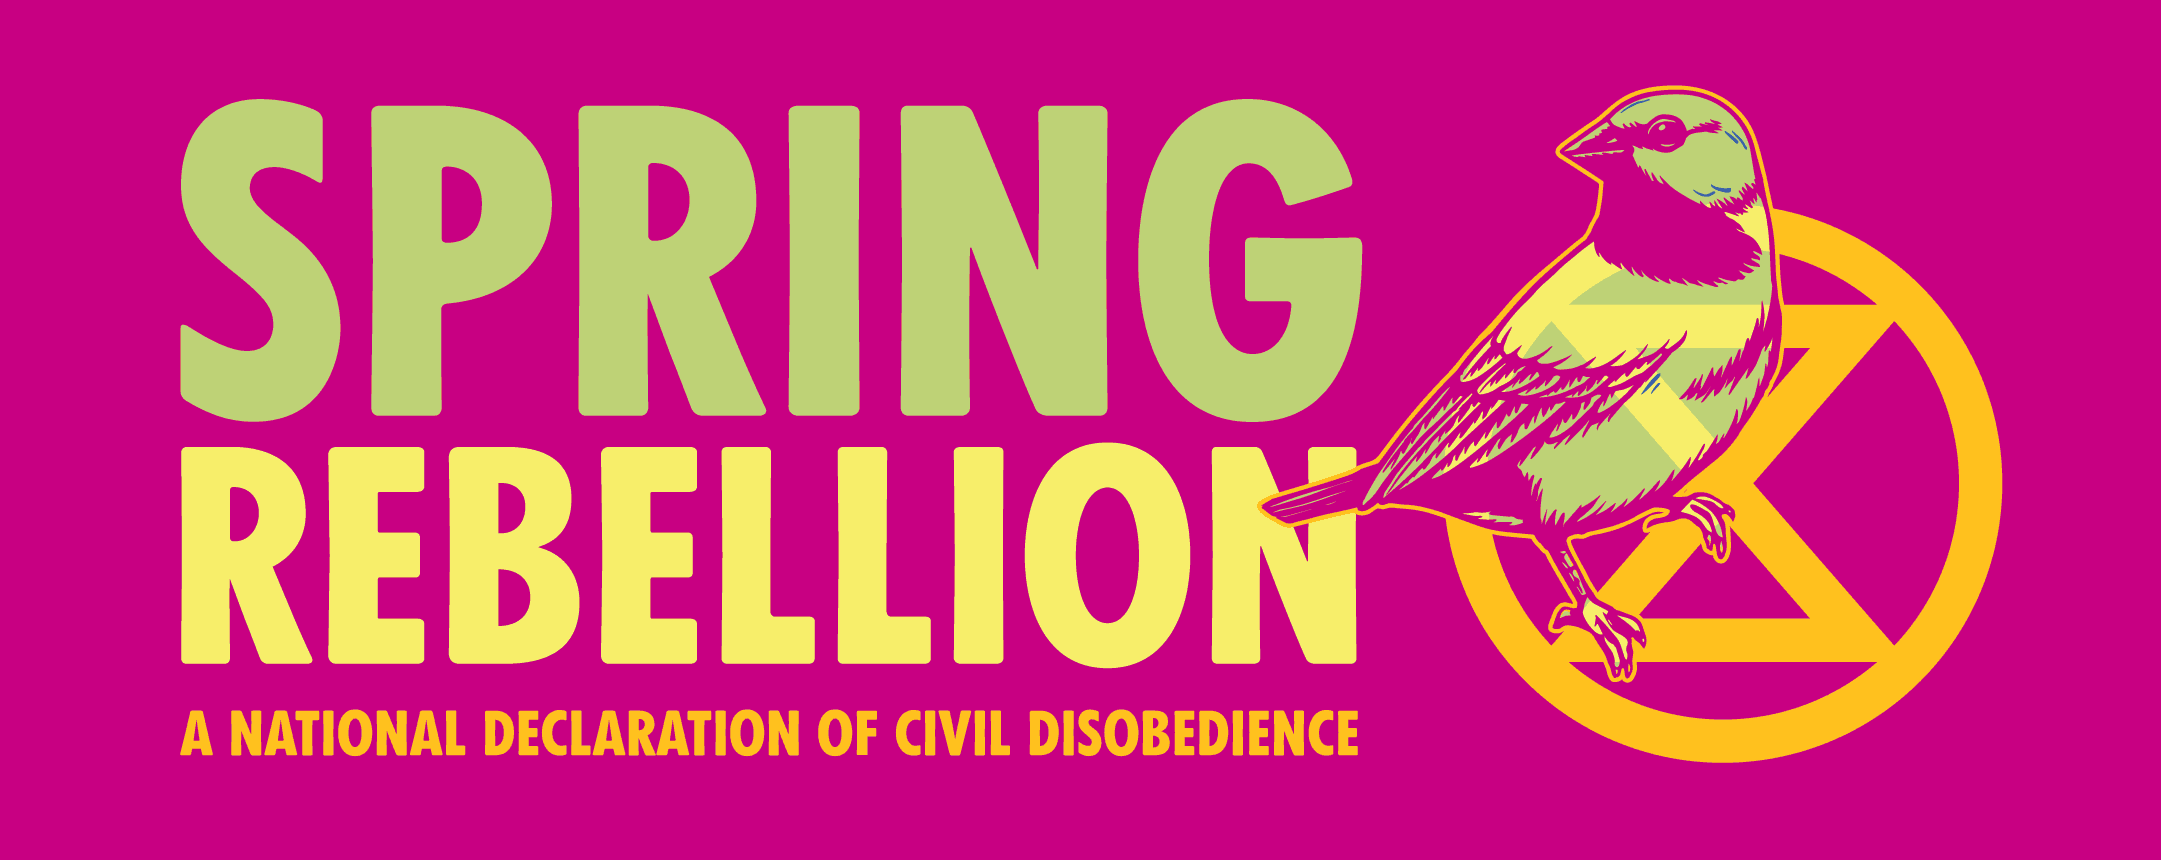 Spring Rebellion – A national declaration of civil disobedience